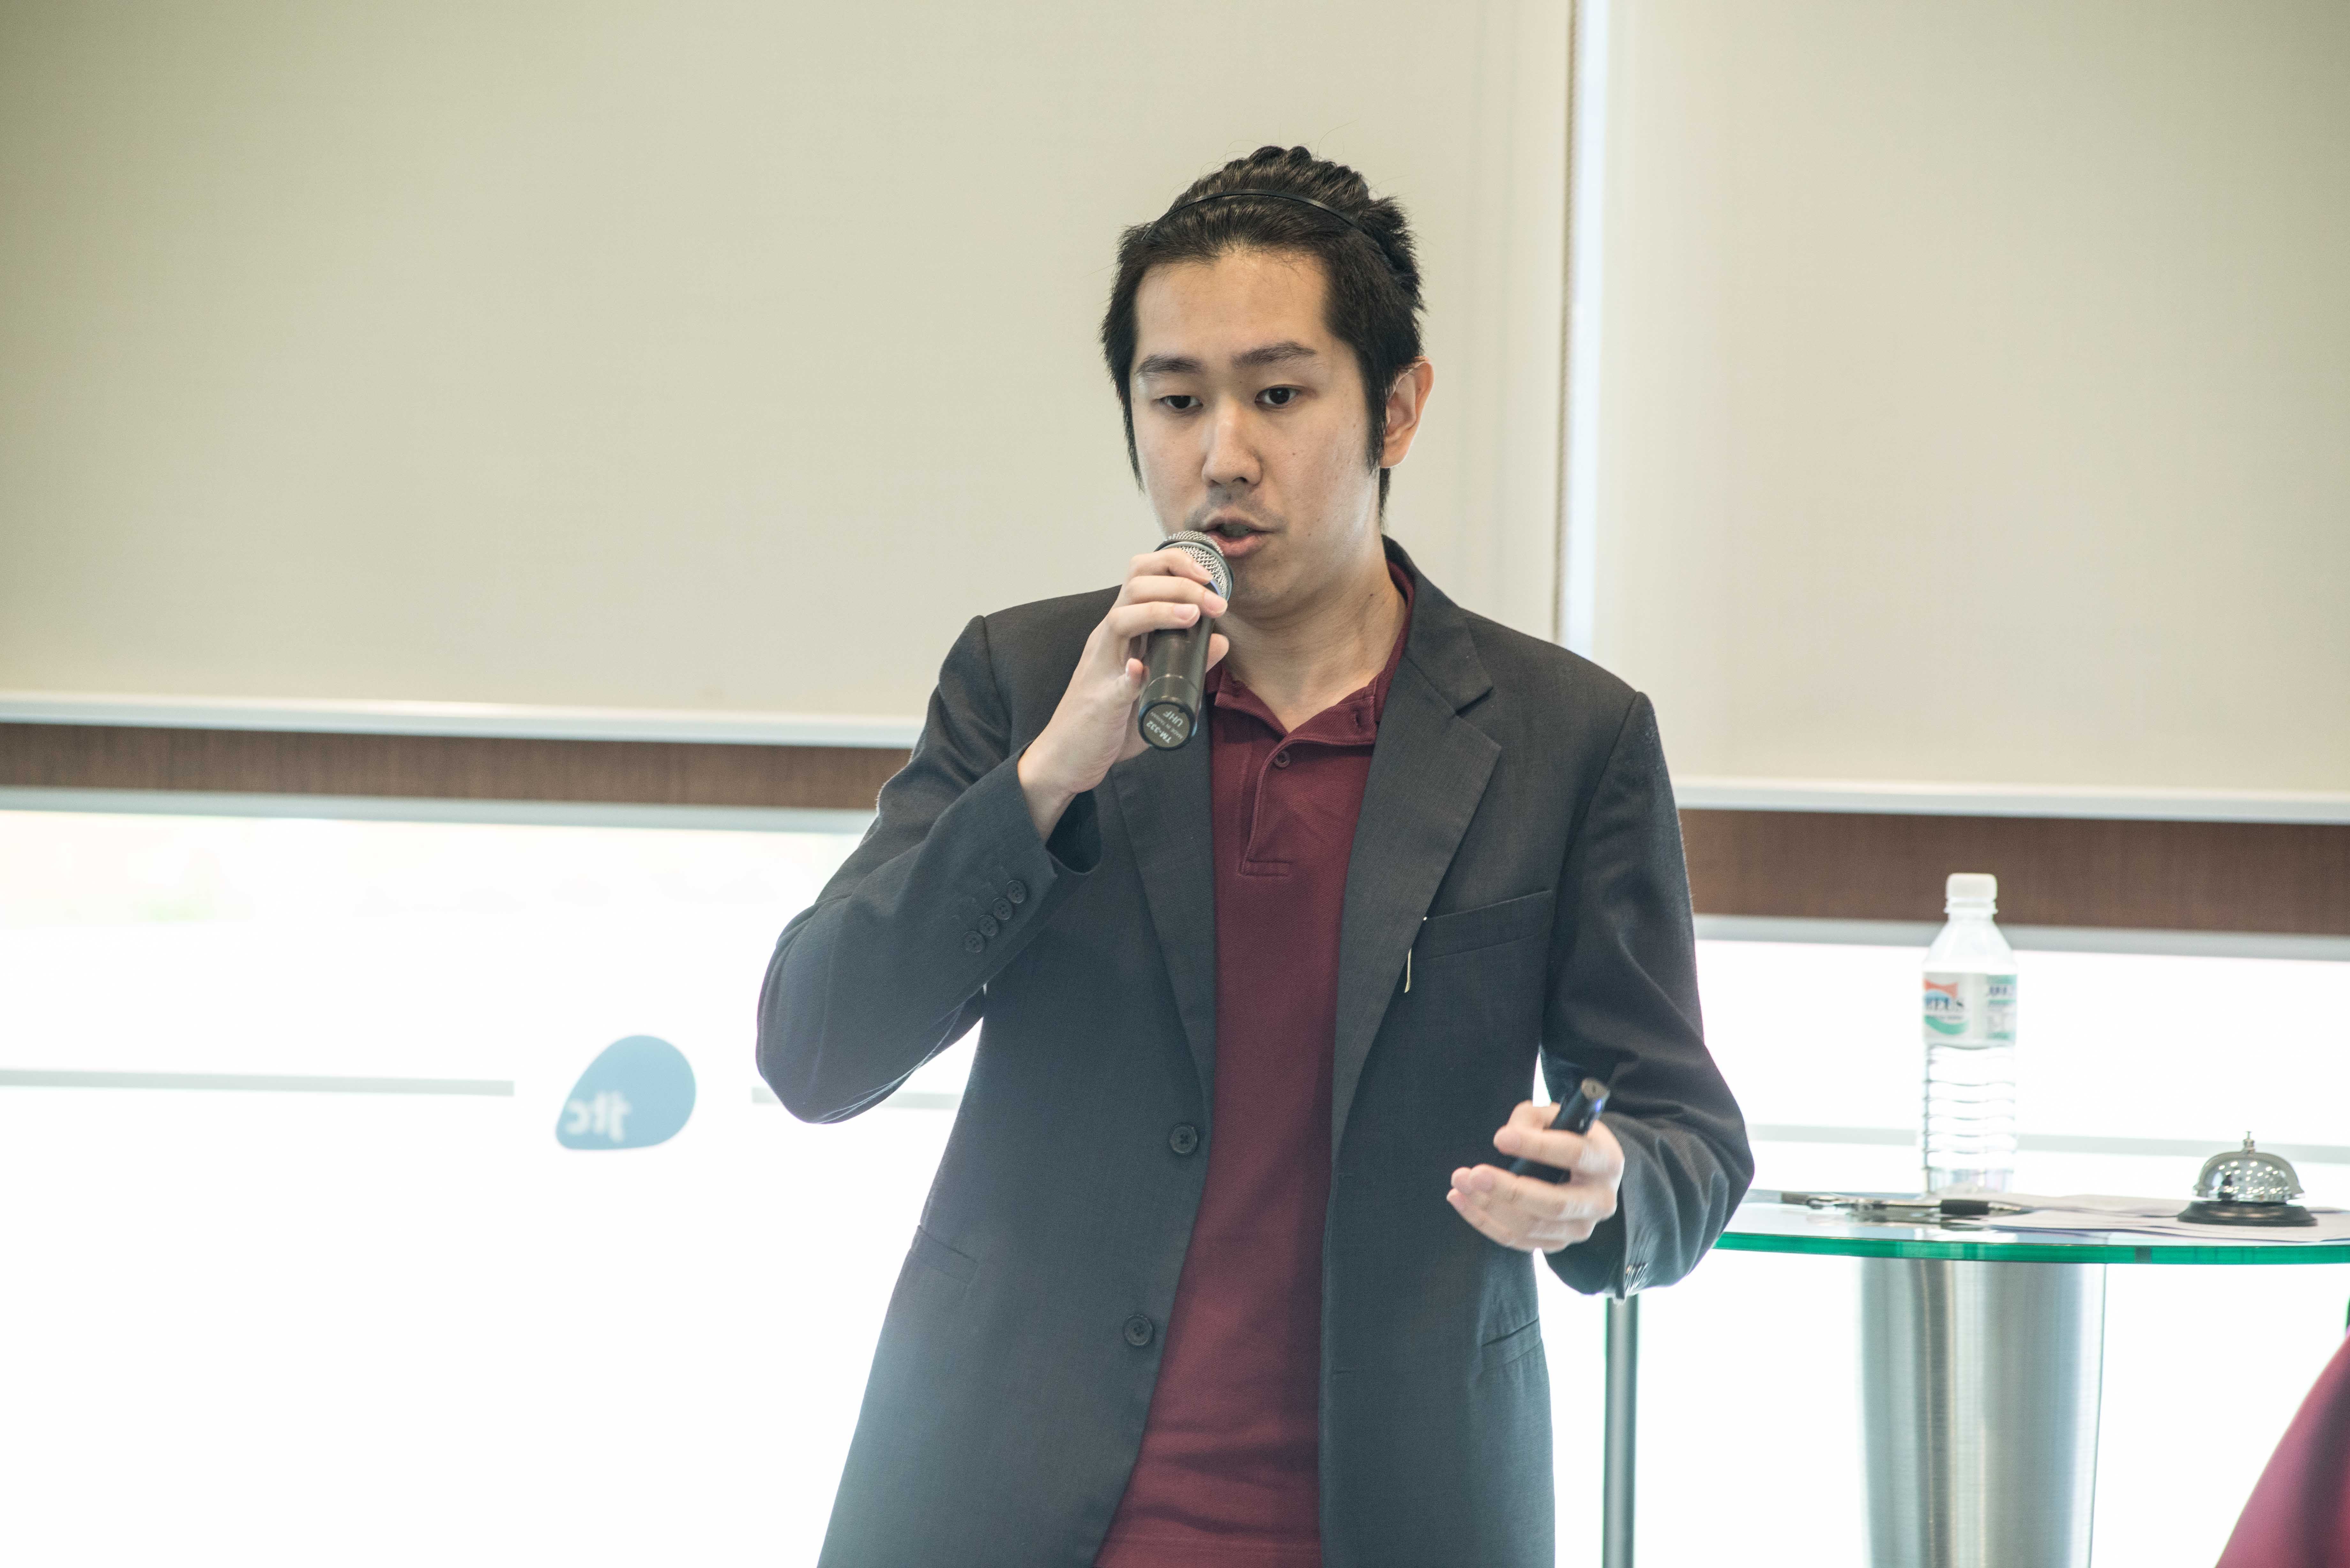 Benjamin Yee talks about breaking into a highly competitive market